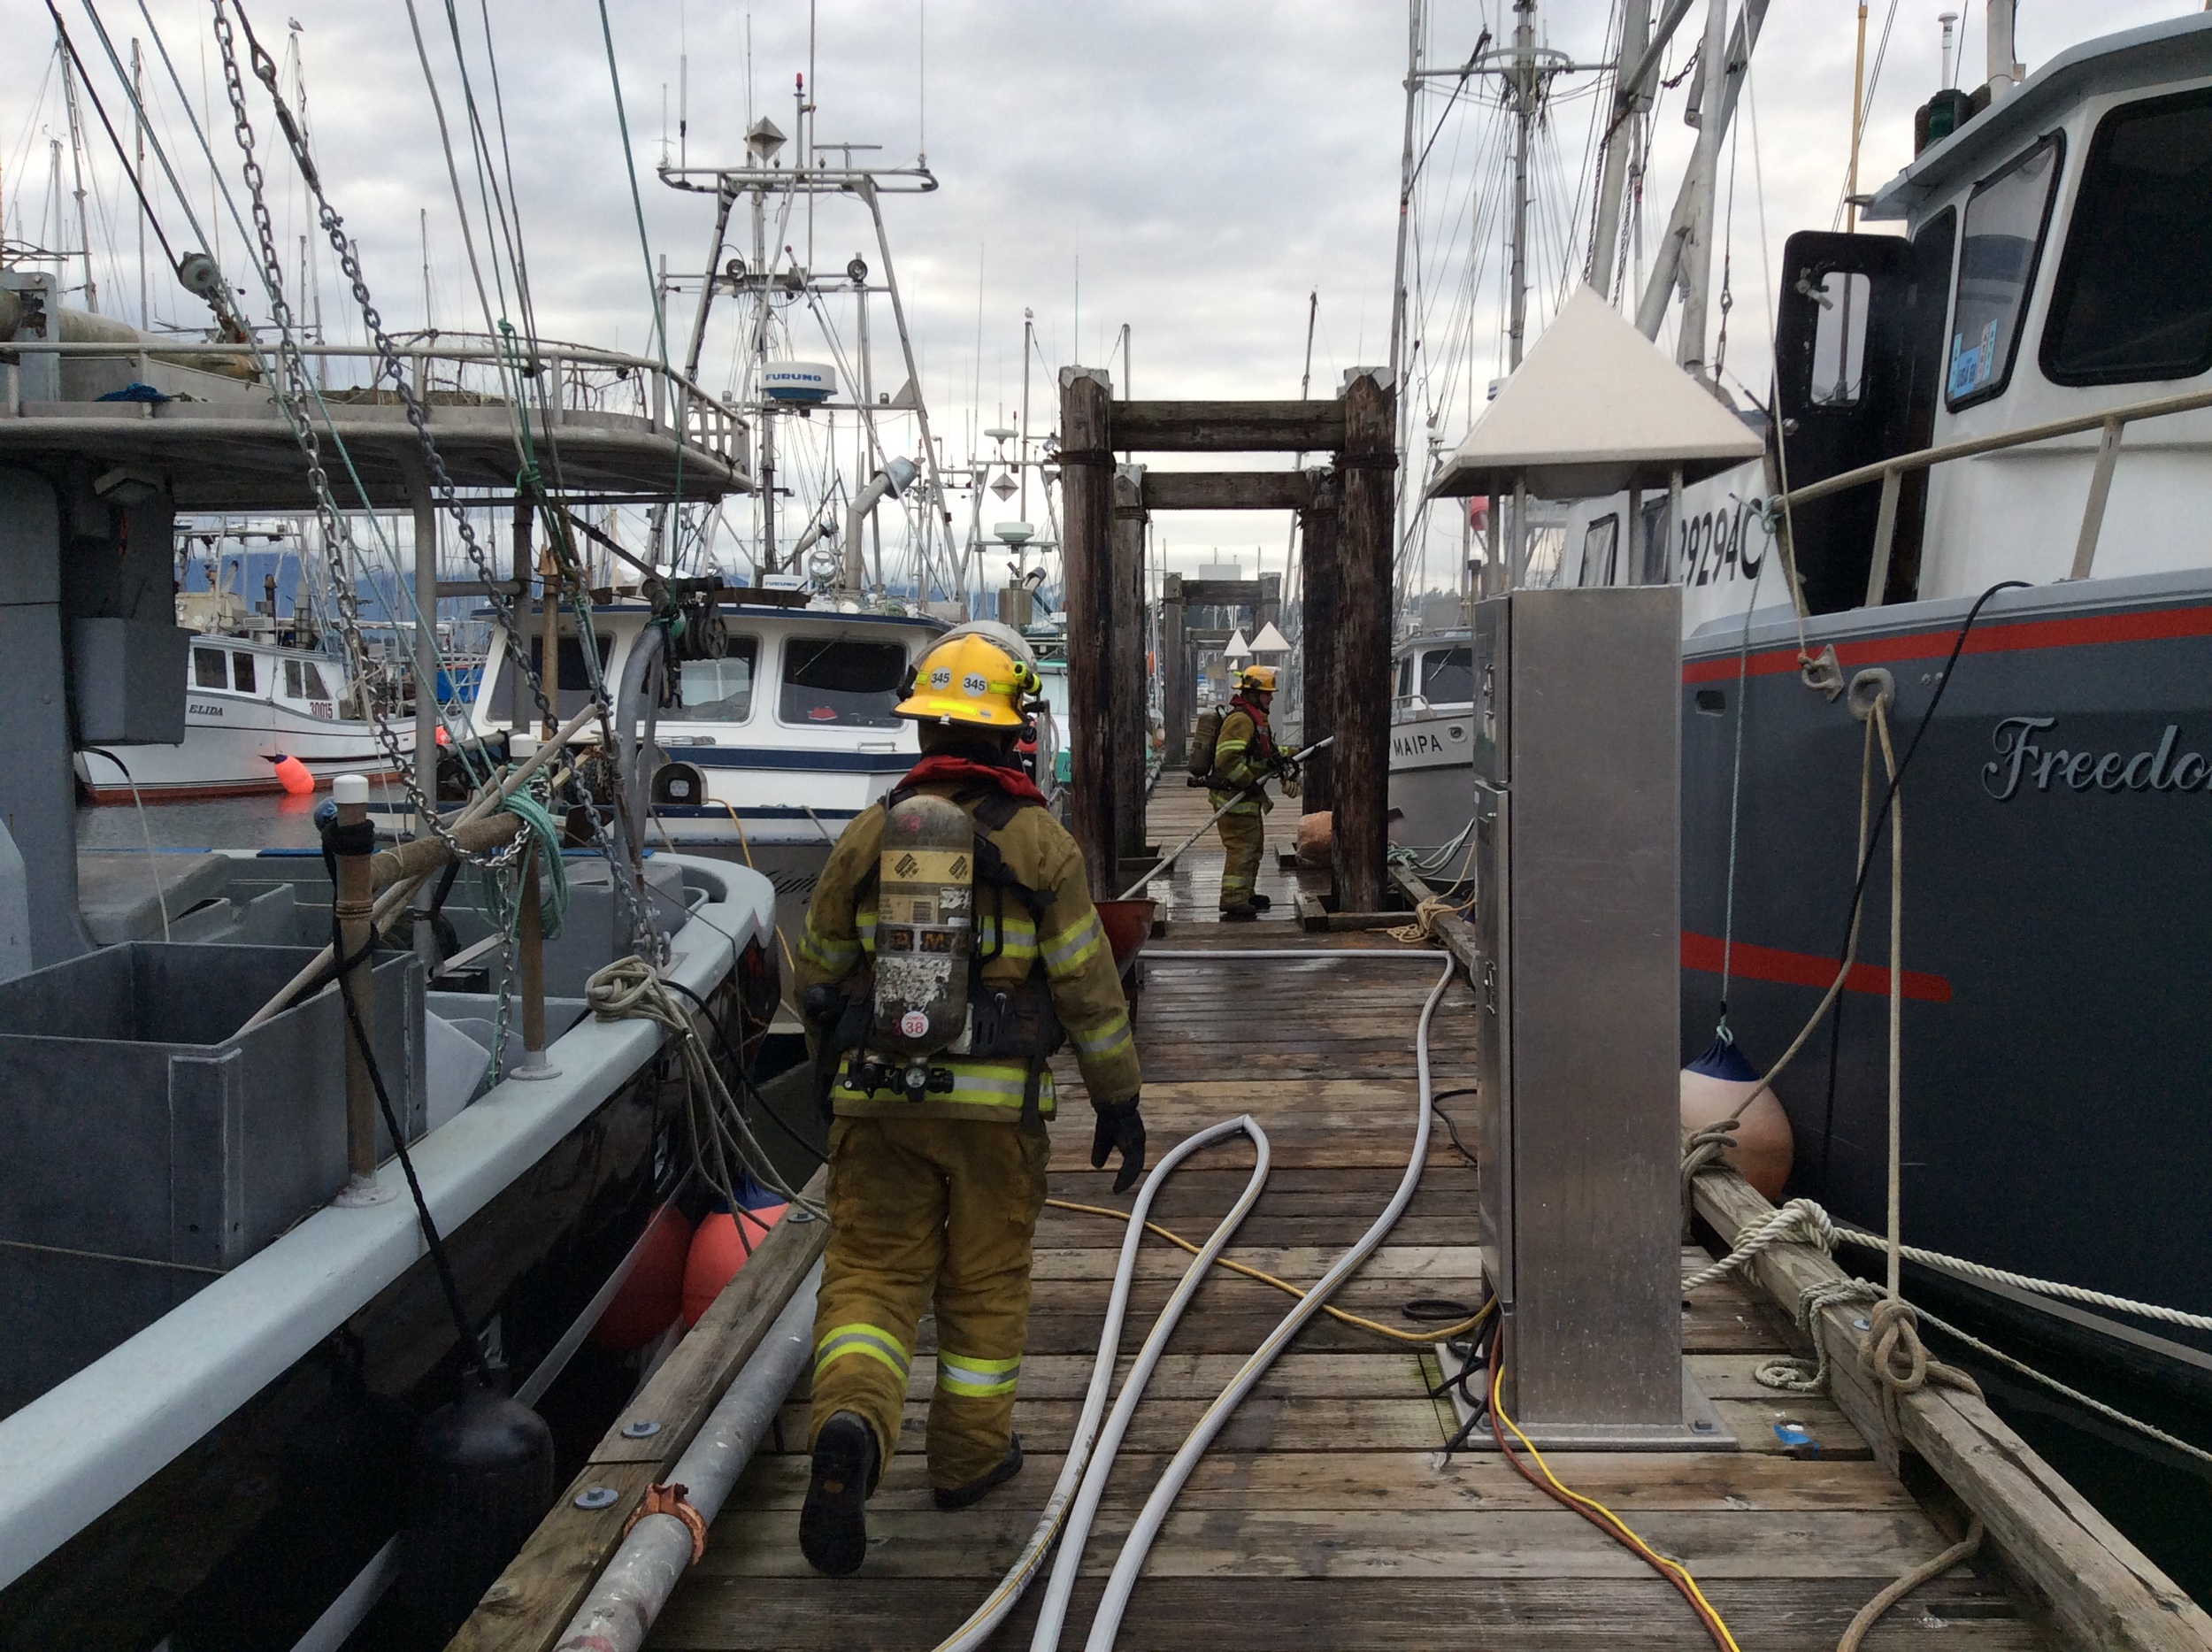 We have plenty of boats to keep safe in Comox